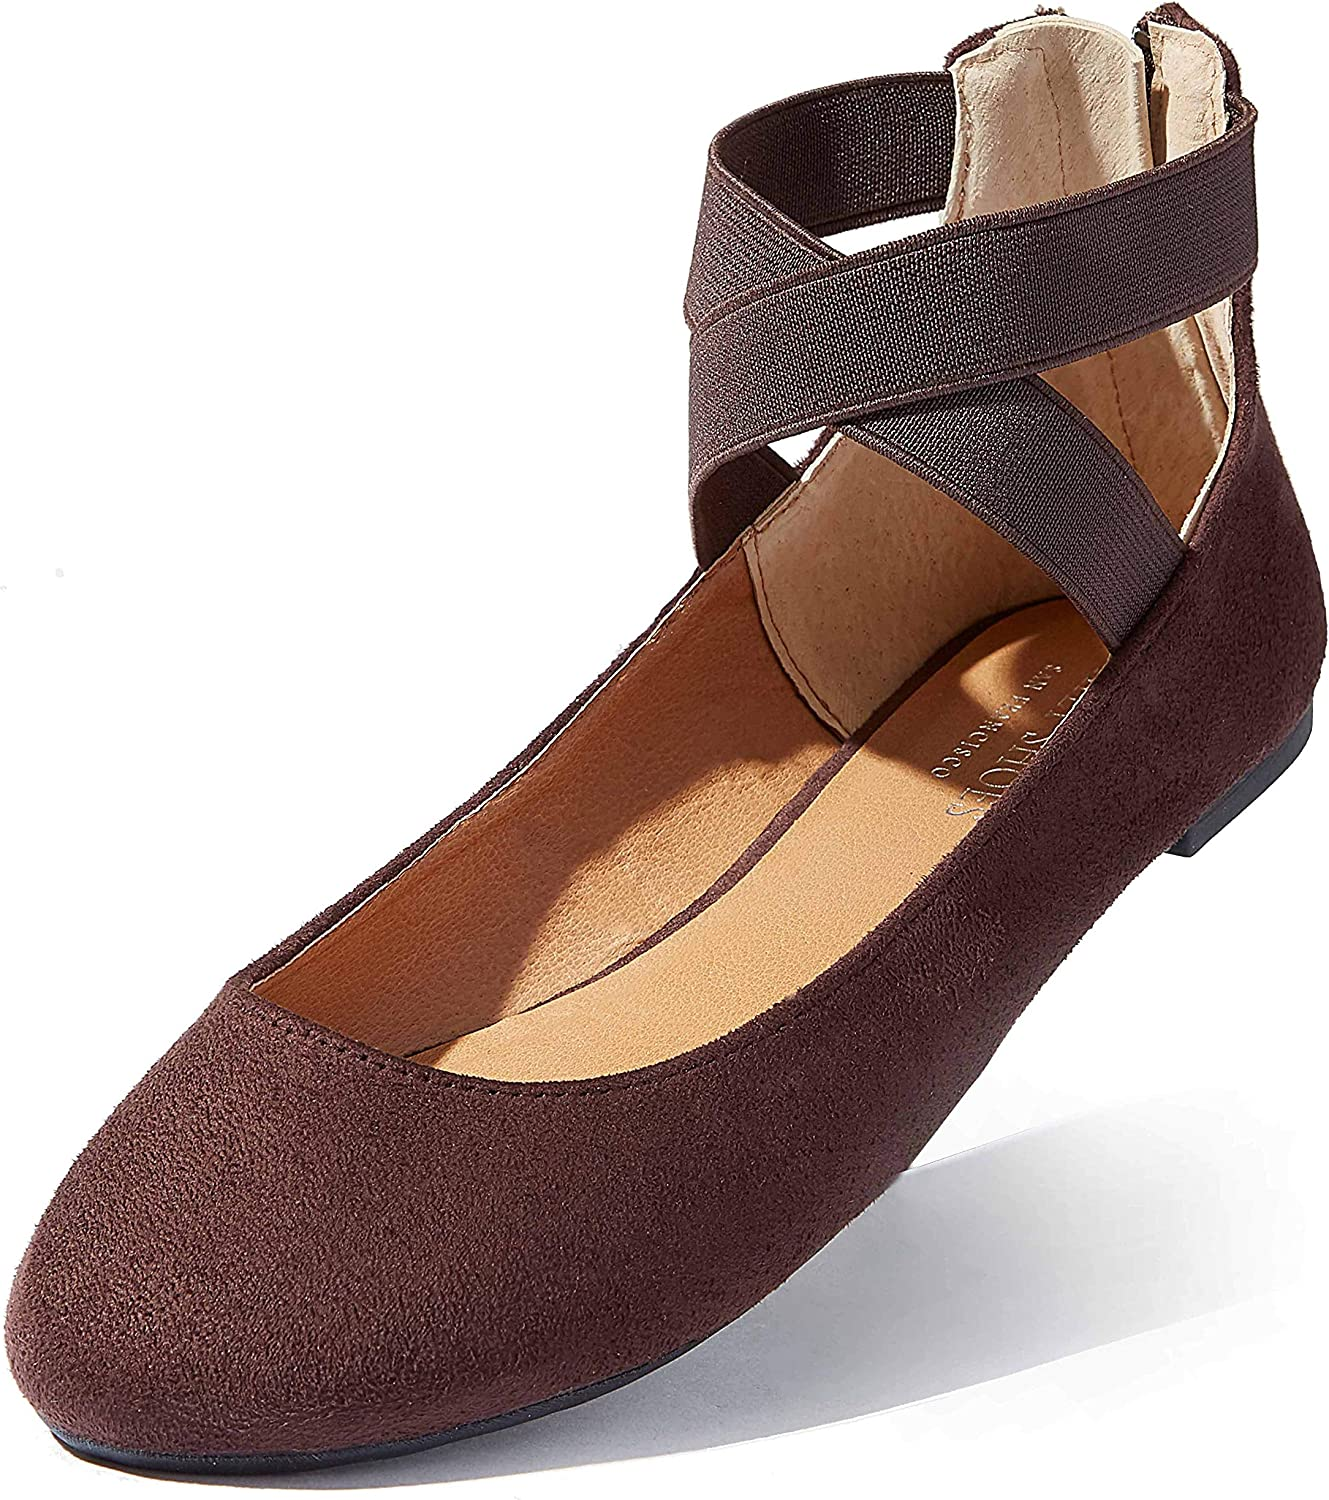 Details about  /Women Ballet Ballerina Shoes Ankle Strap Slip On Flat Casual Comfy Sandals Size